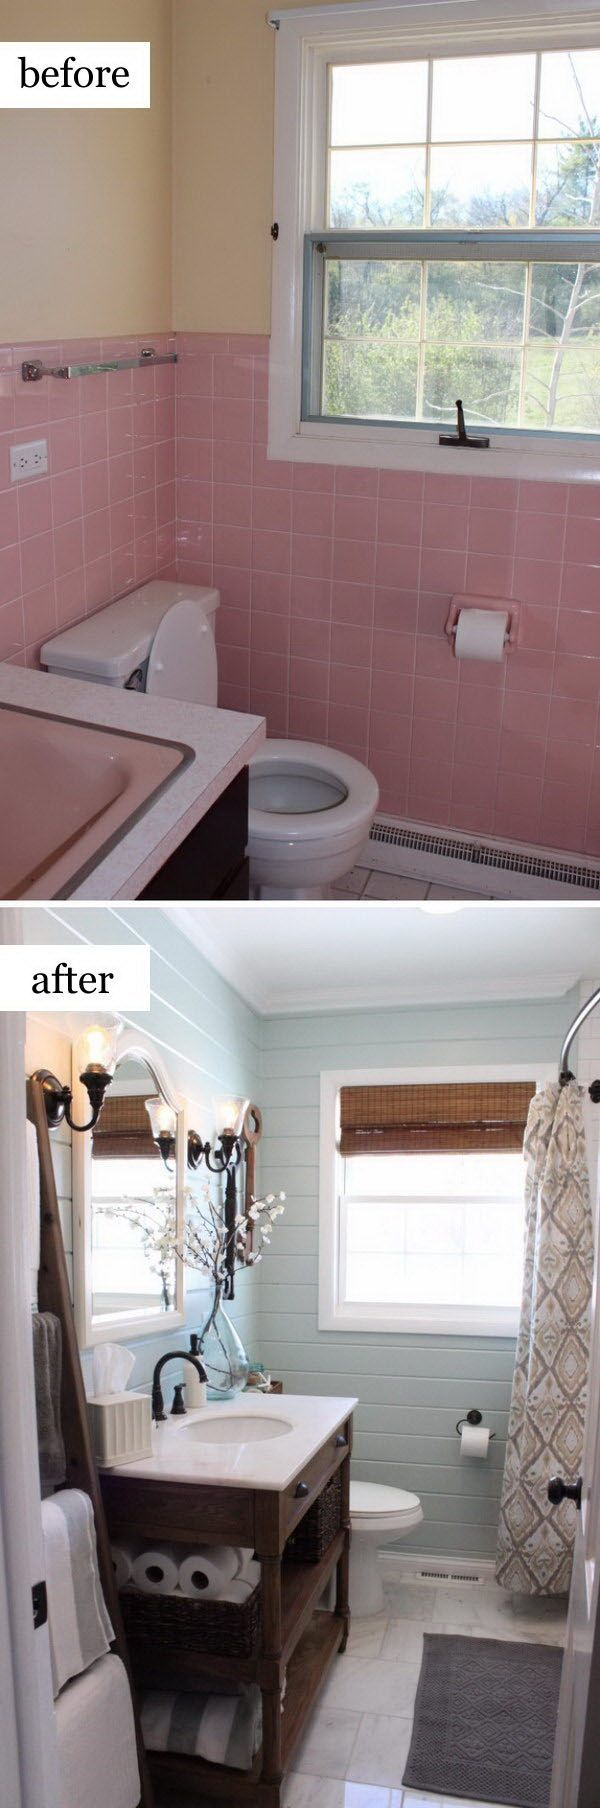 Rustic Chic Bathroom Makeover.                                                                                                                                                                                 More